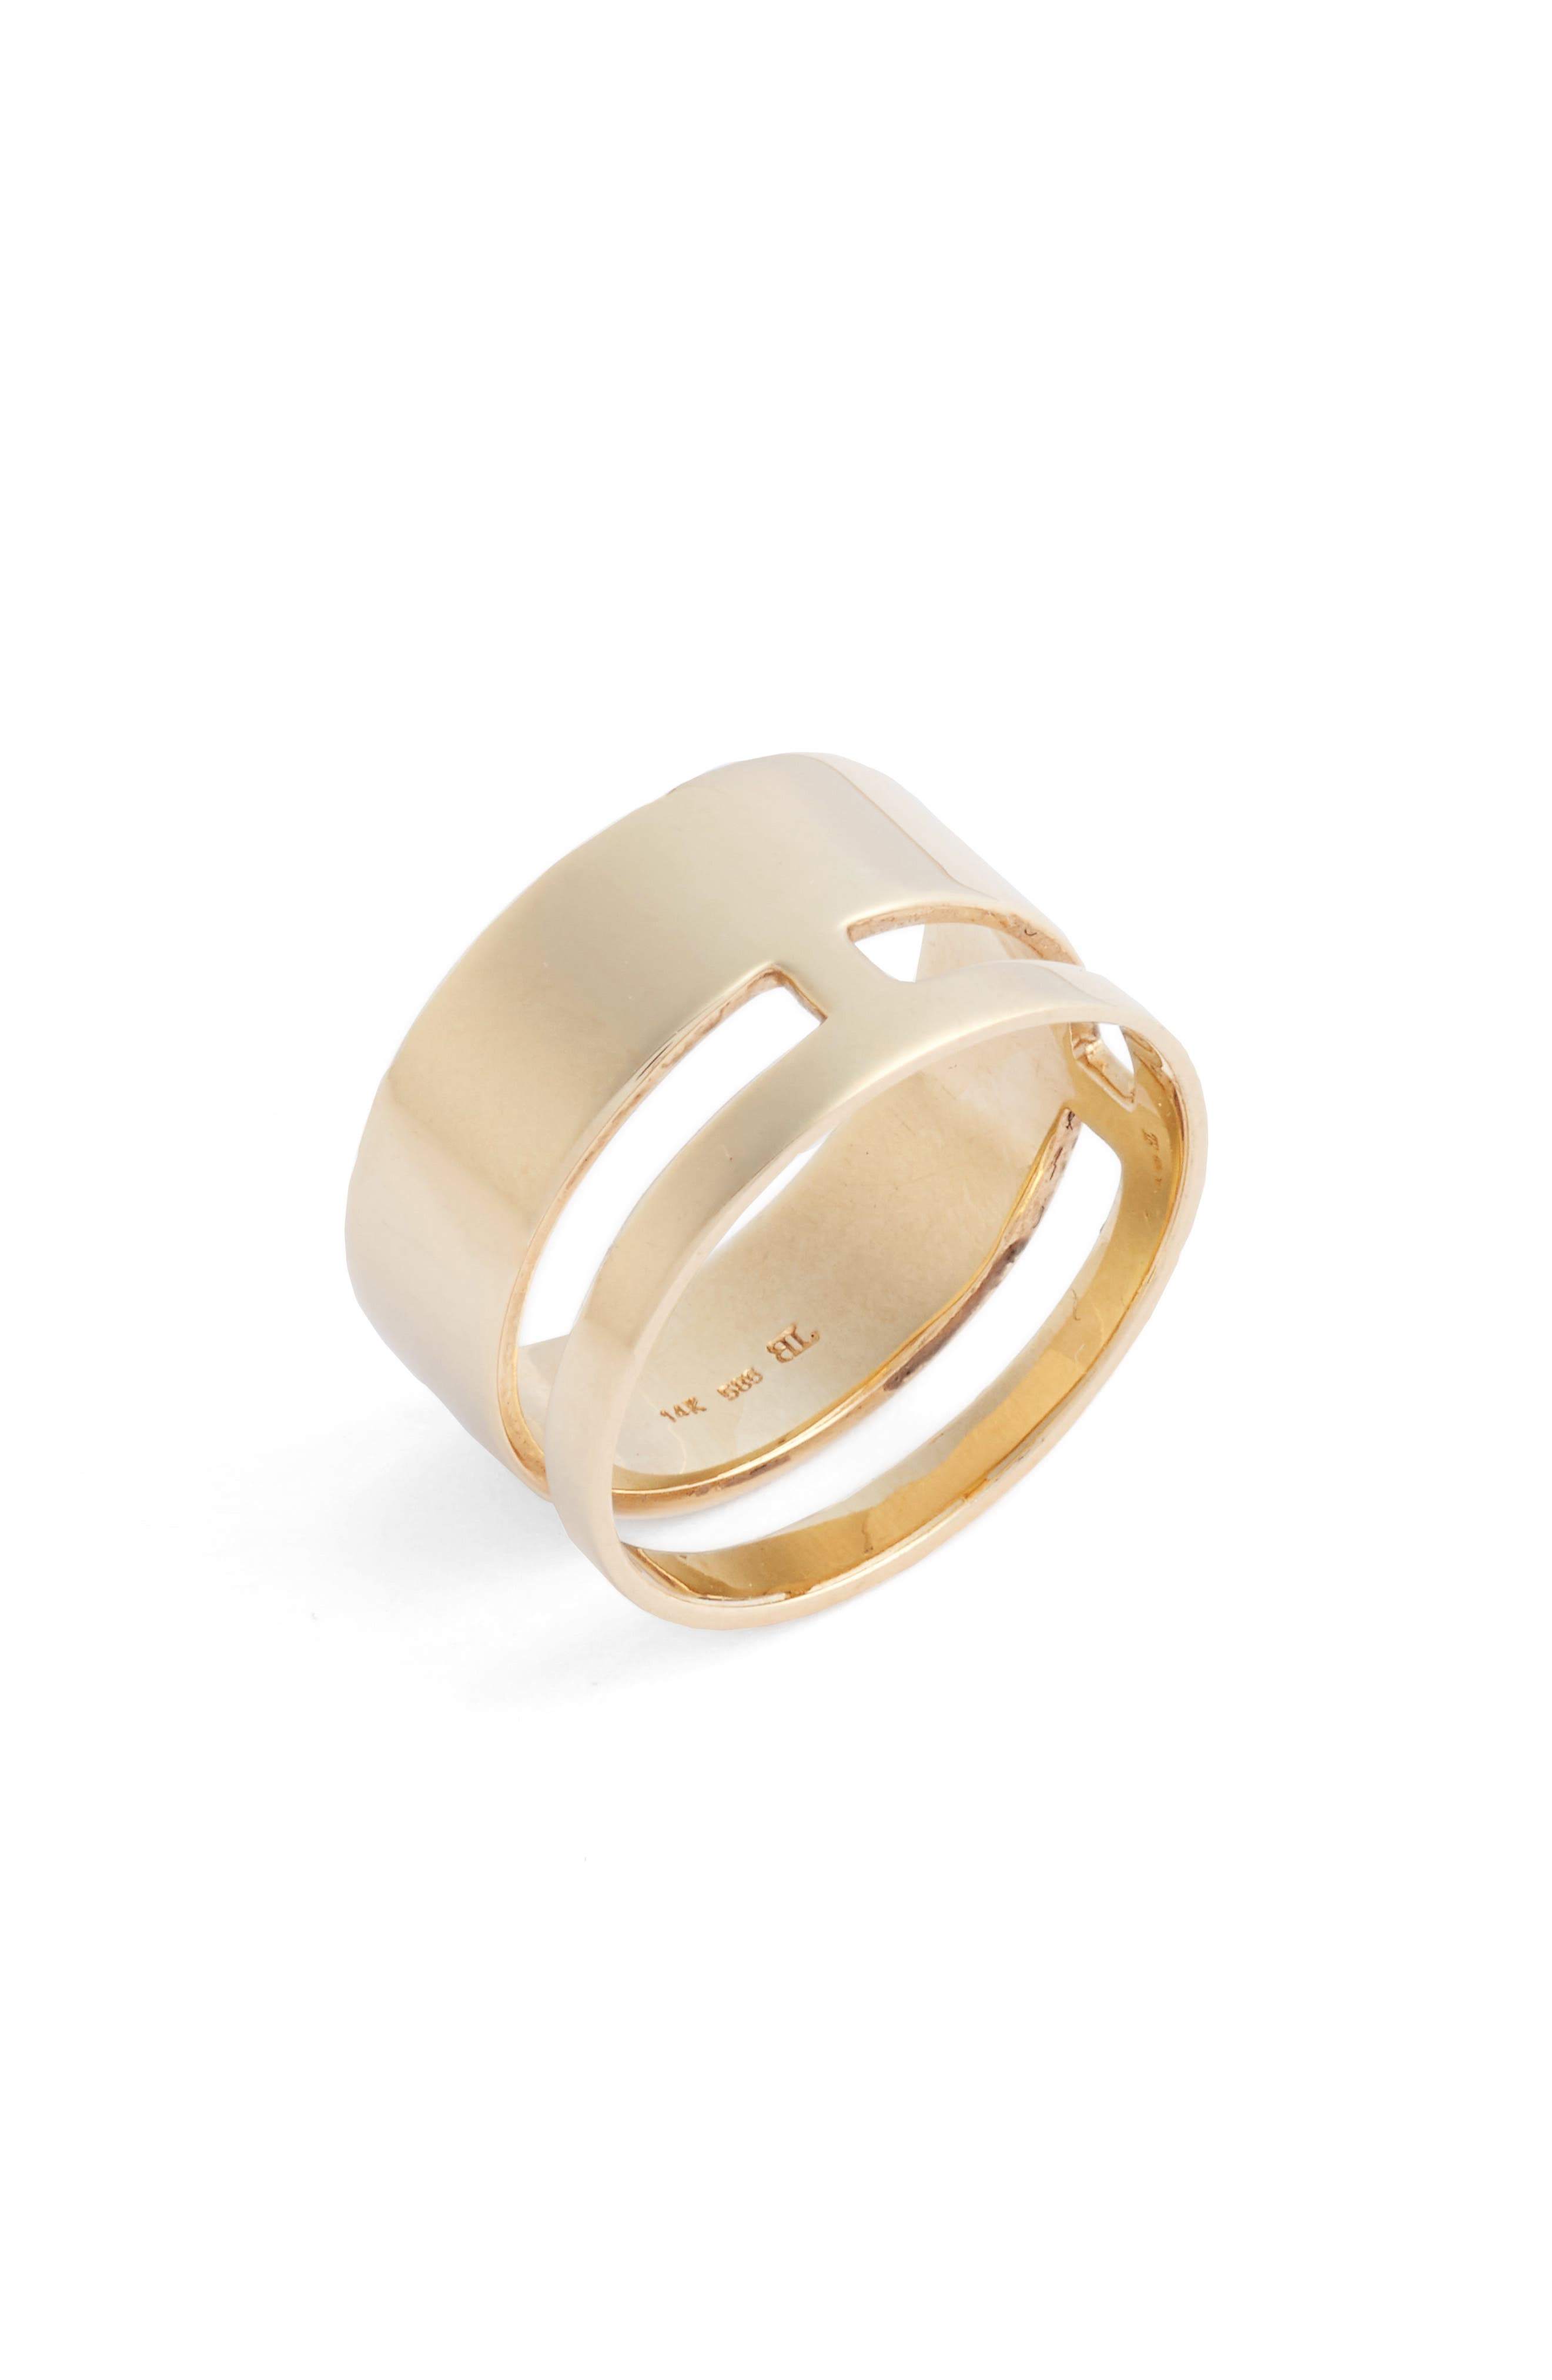 BONY LEVY Ofira Bold 14K Gold Ring, Main, color, YELLOW GOLD